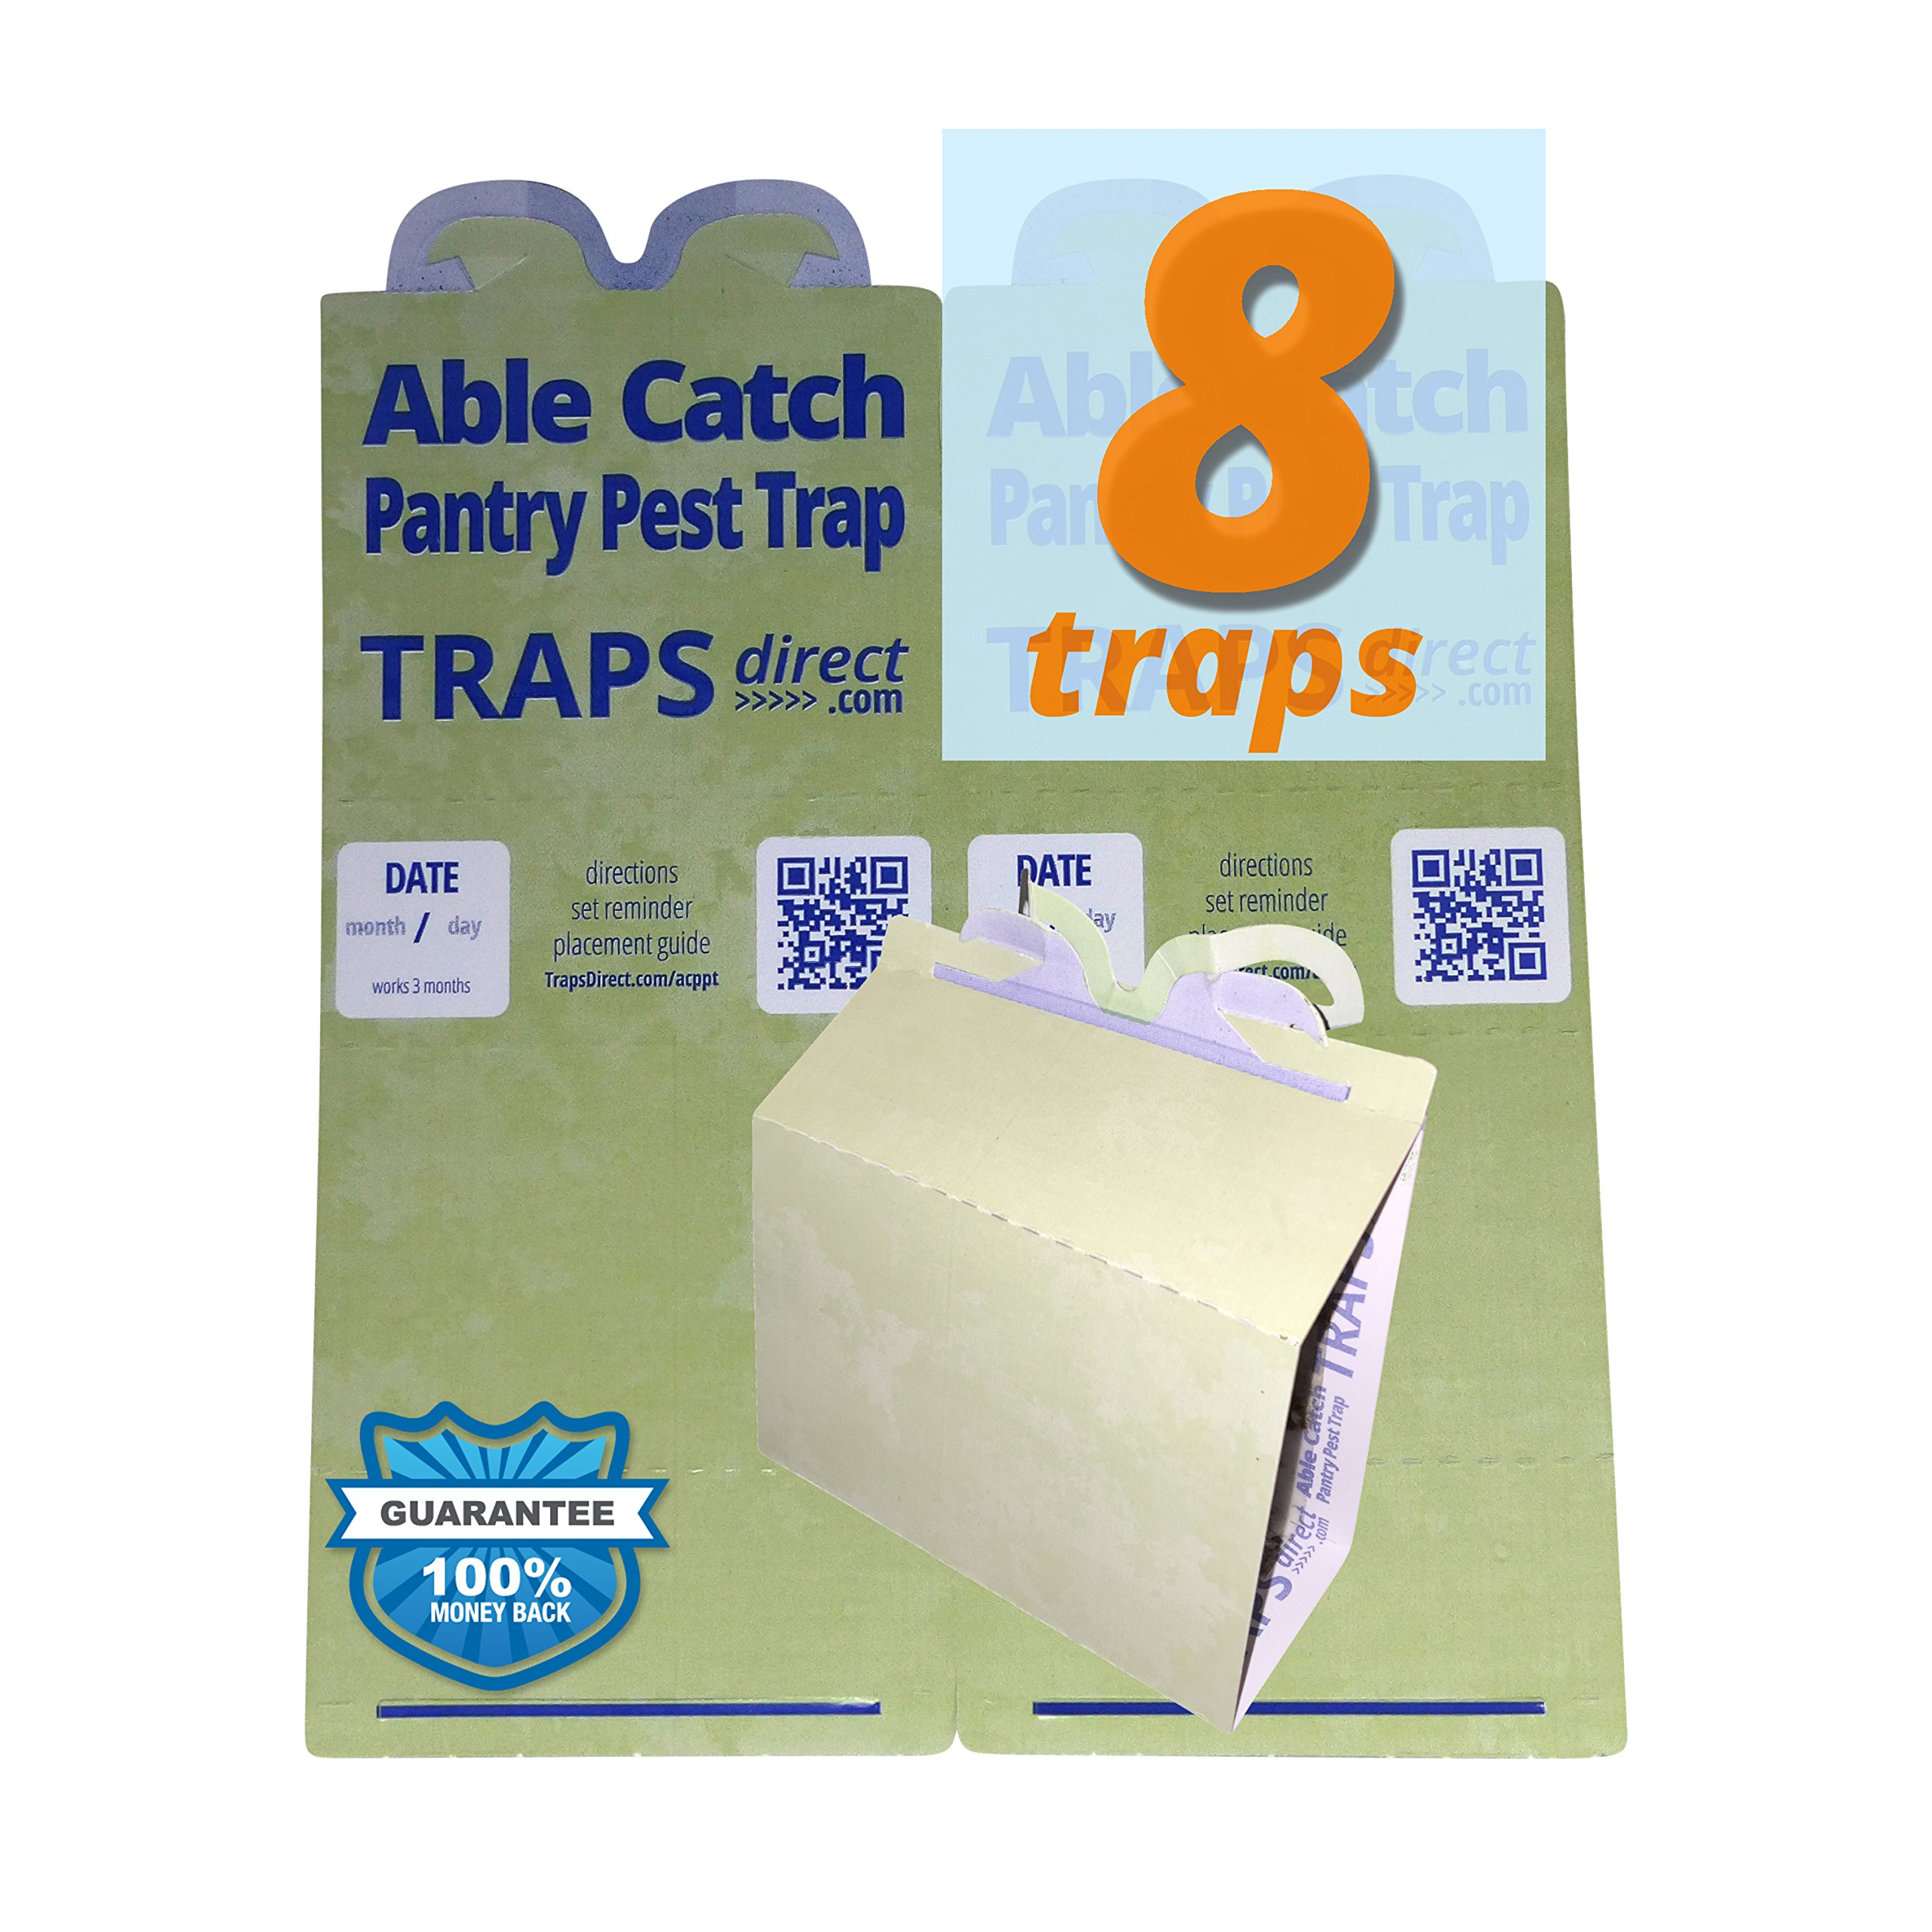 8 Pantry Moth Traps | Effective Non-toxic Pheromone Lure | USA Made | Guarantee by Able Catch (Image #1)